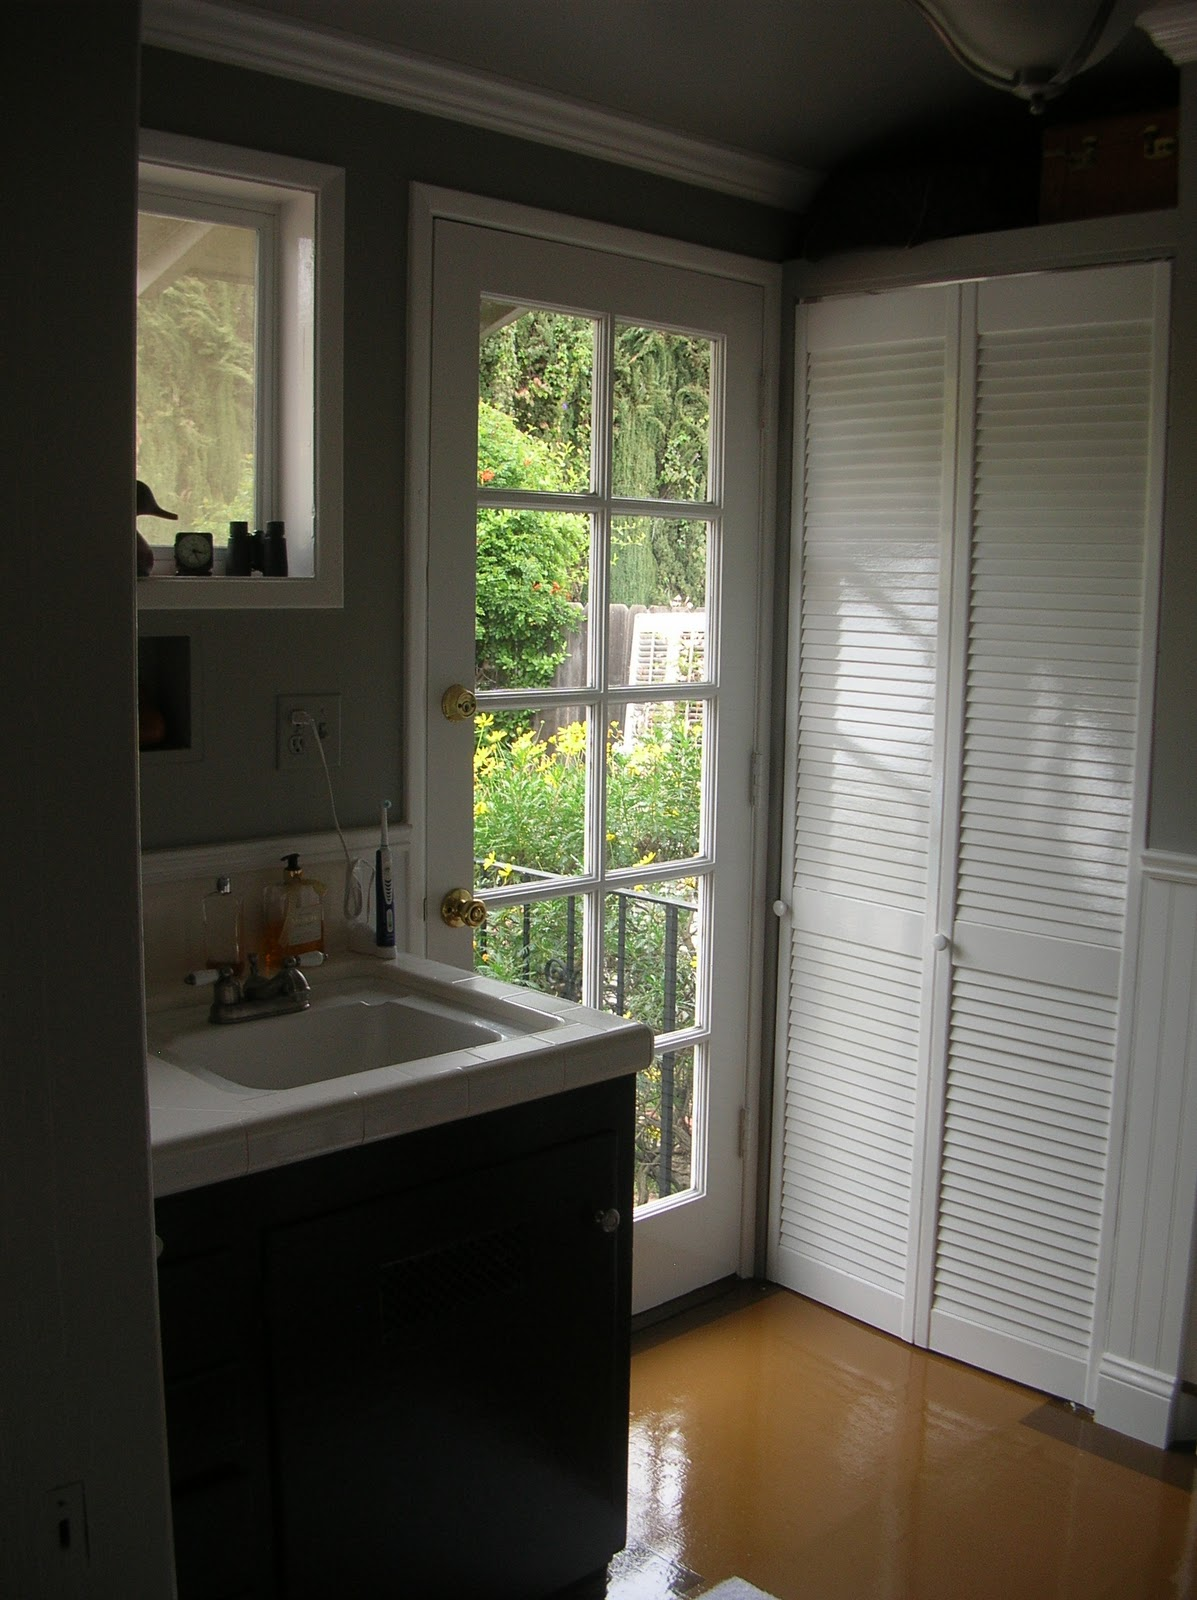 Bathroom Remodels Under $1000 my dinners w/ richard & other musings: 2011: a bathroom odyssey or